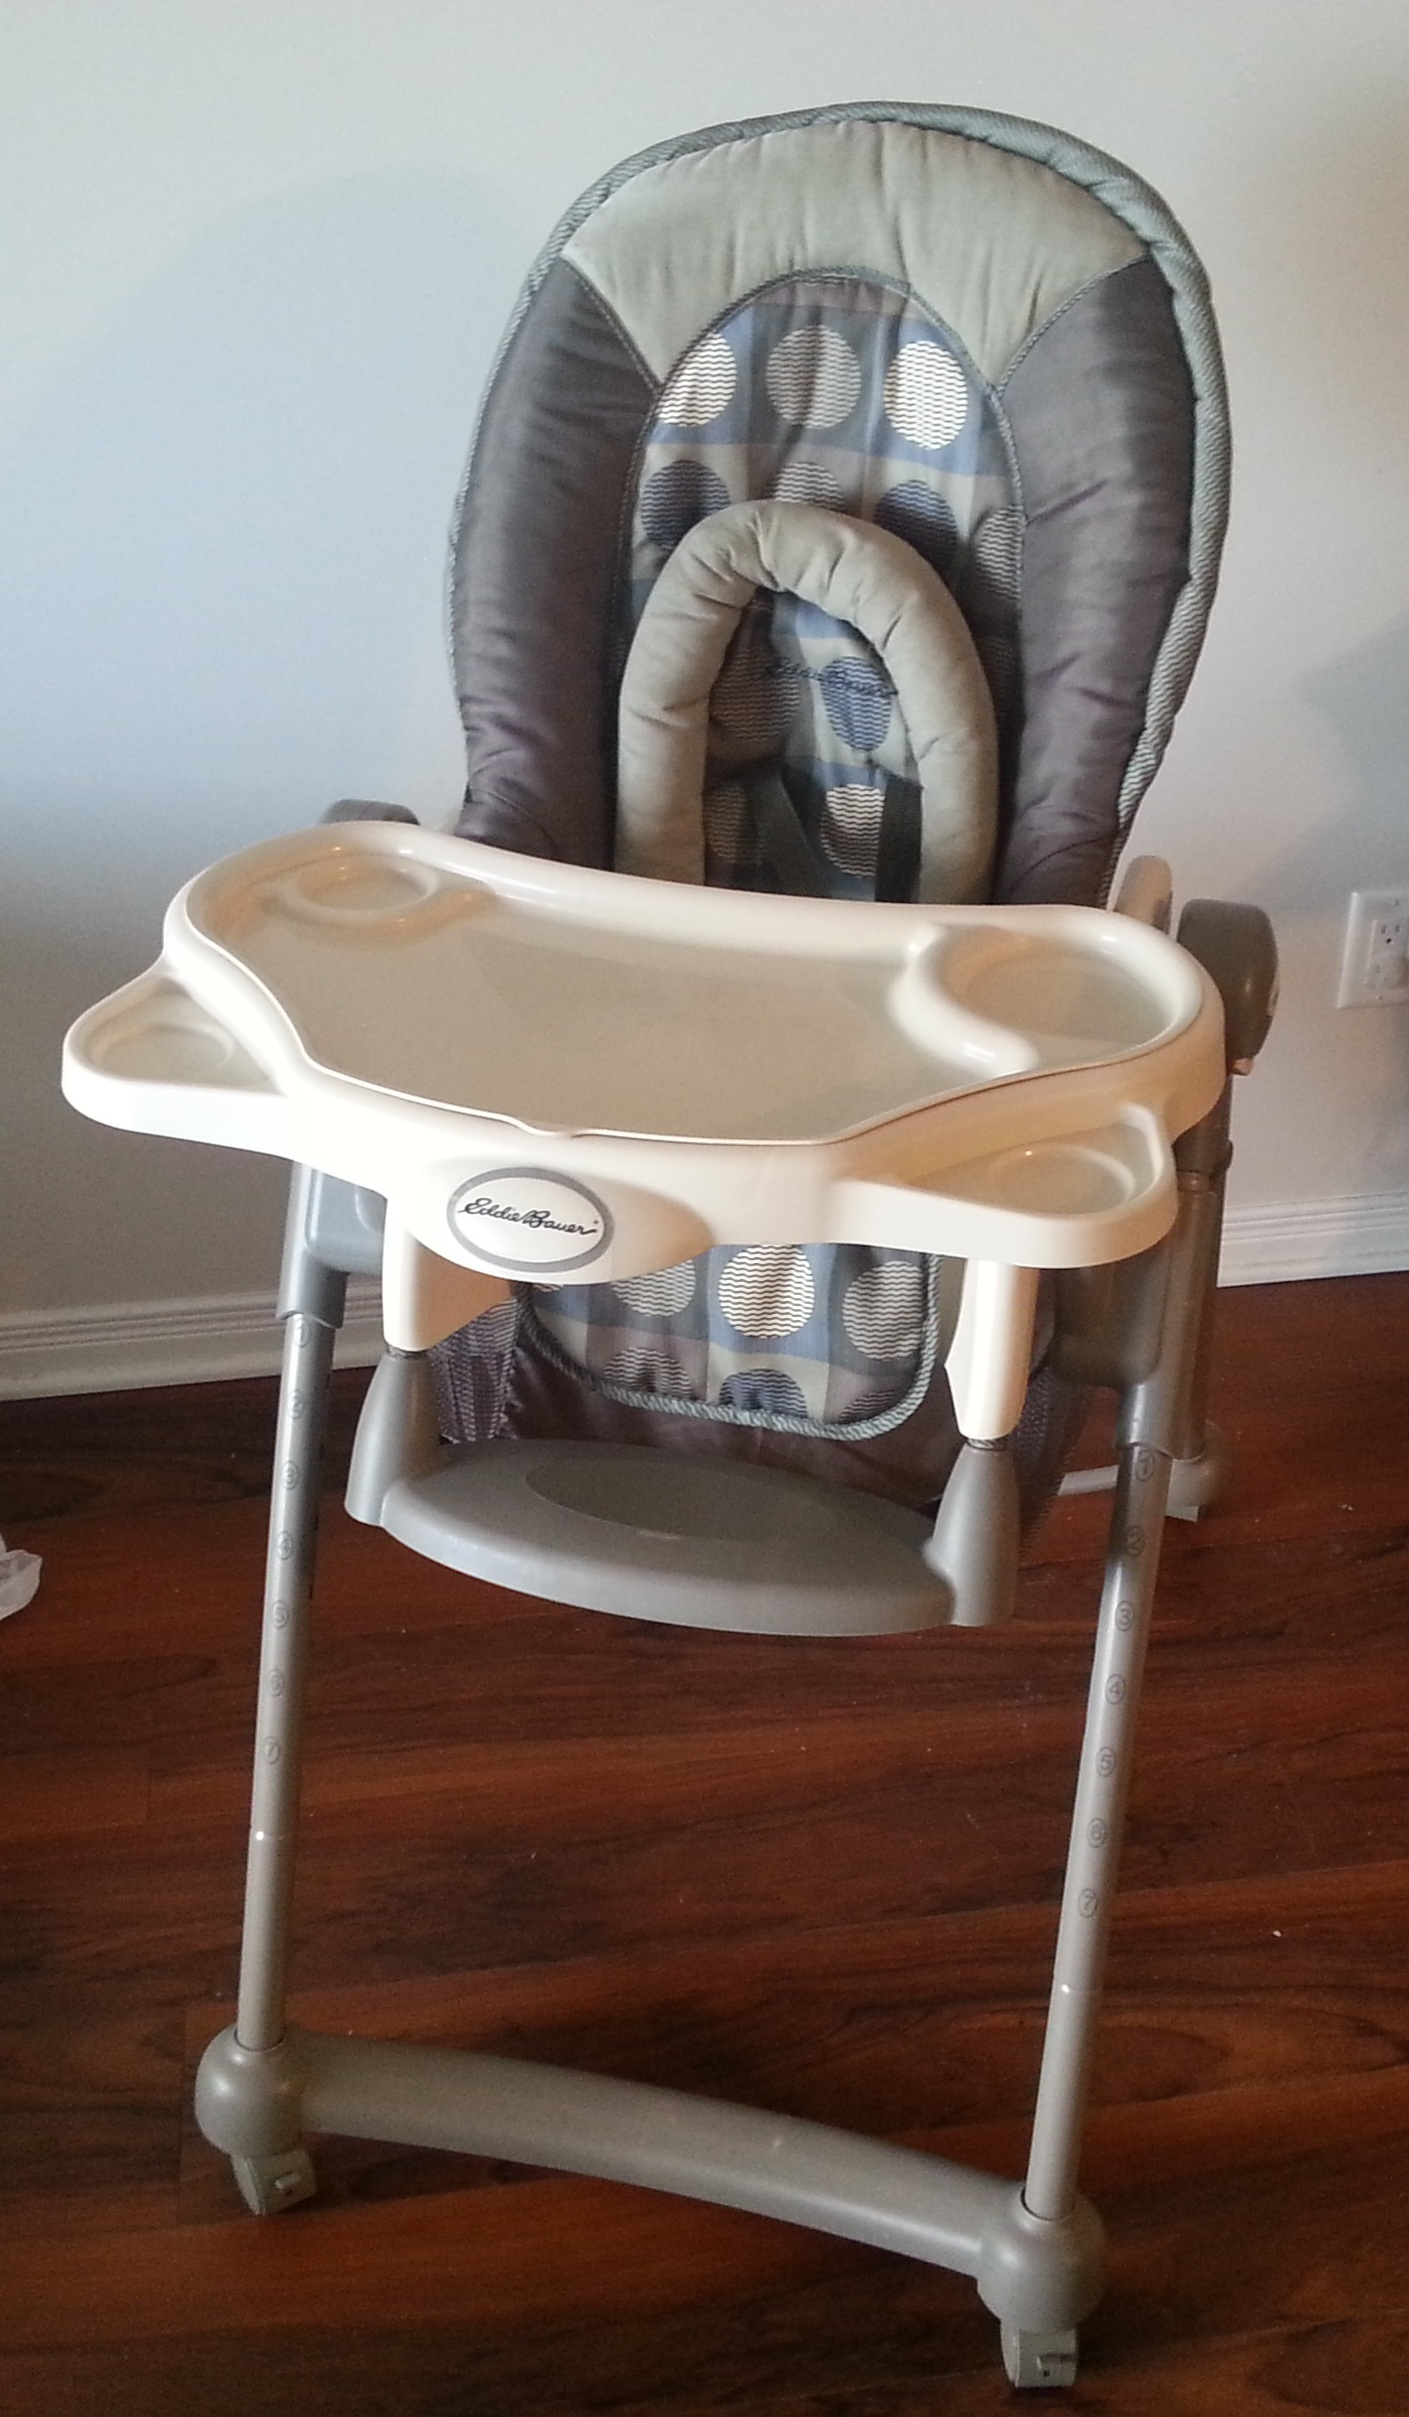 Eddie Bauer Deluxe High Chair  KingstonGreatSale